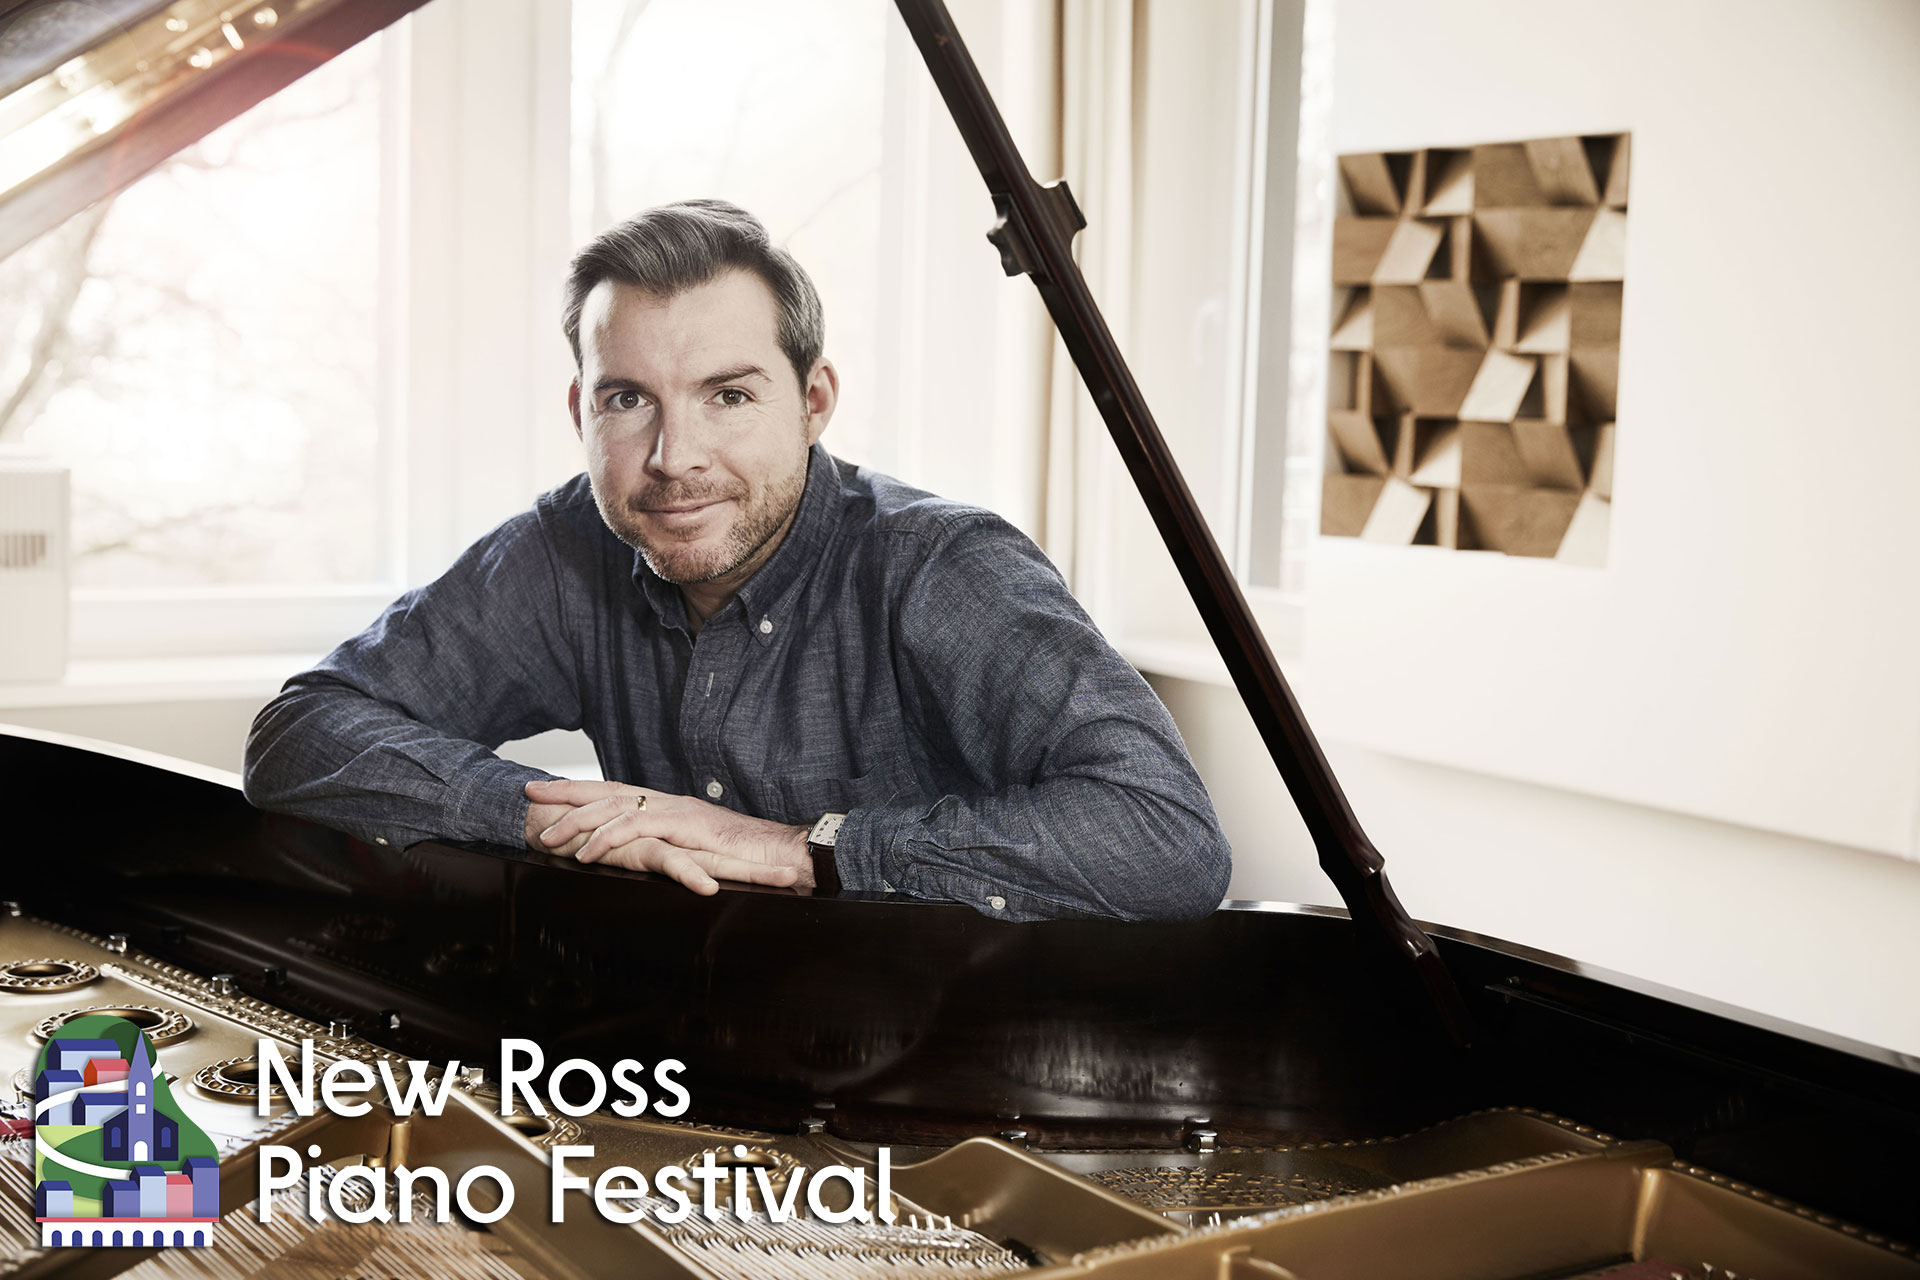 New Ross Piano Festival 2019 - Press Release - Gwilym Simcock